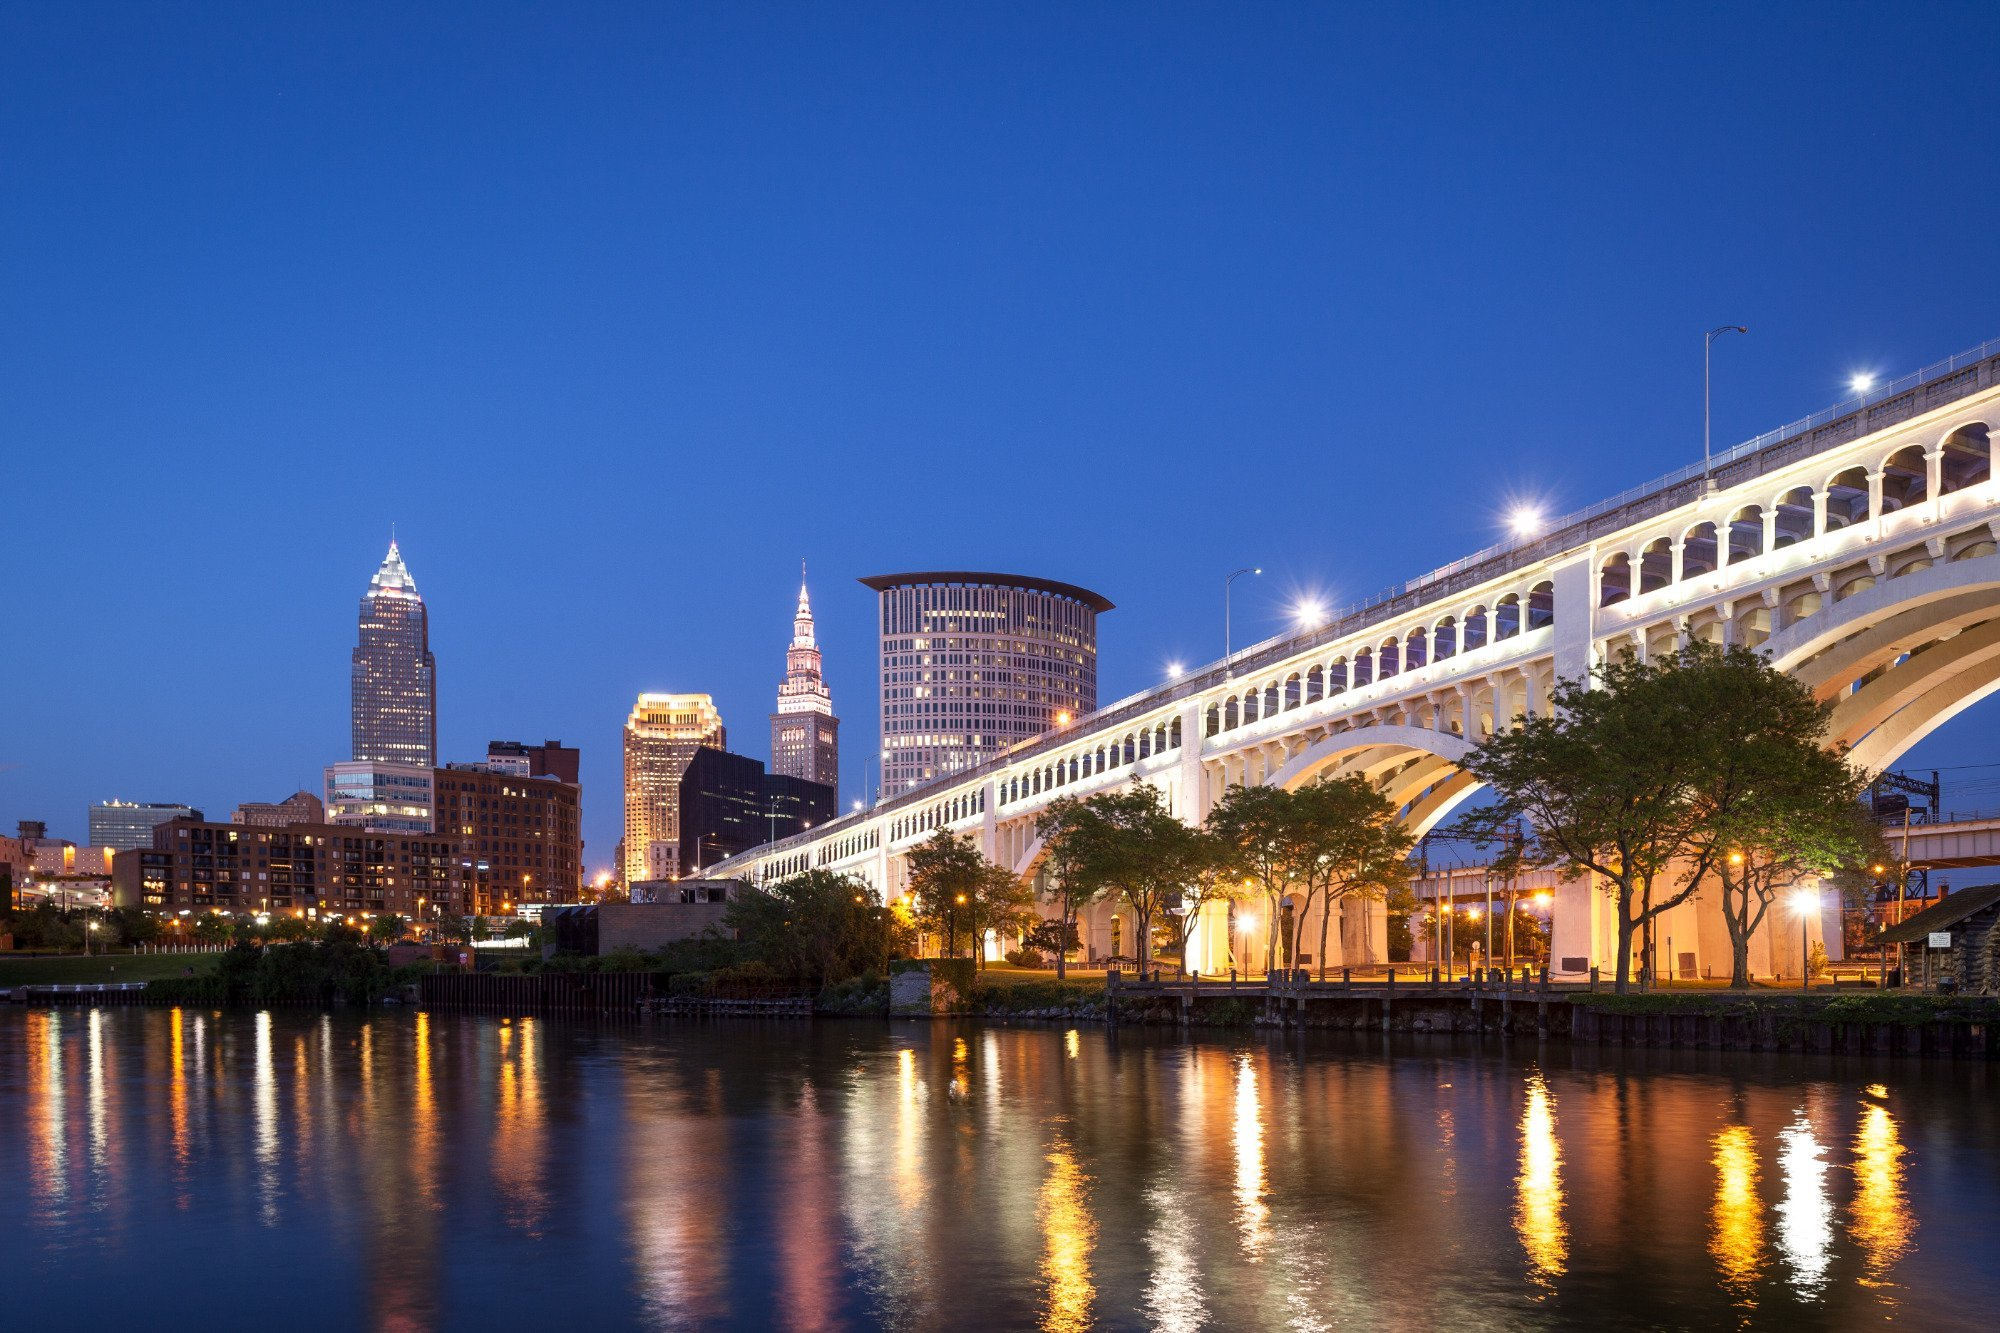 This is an image of the downtown Cleveland skyline at night